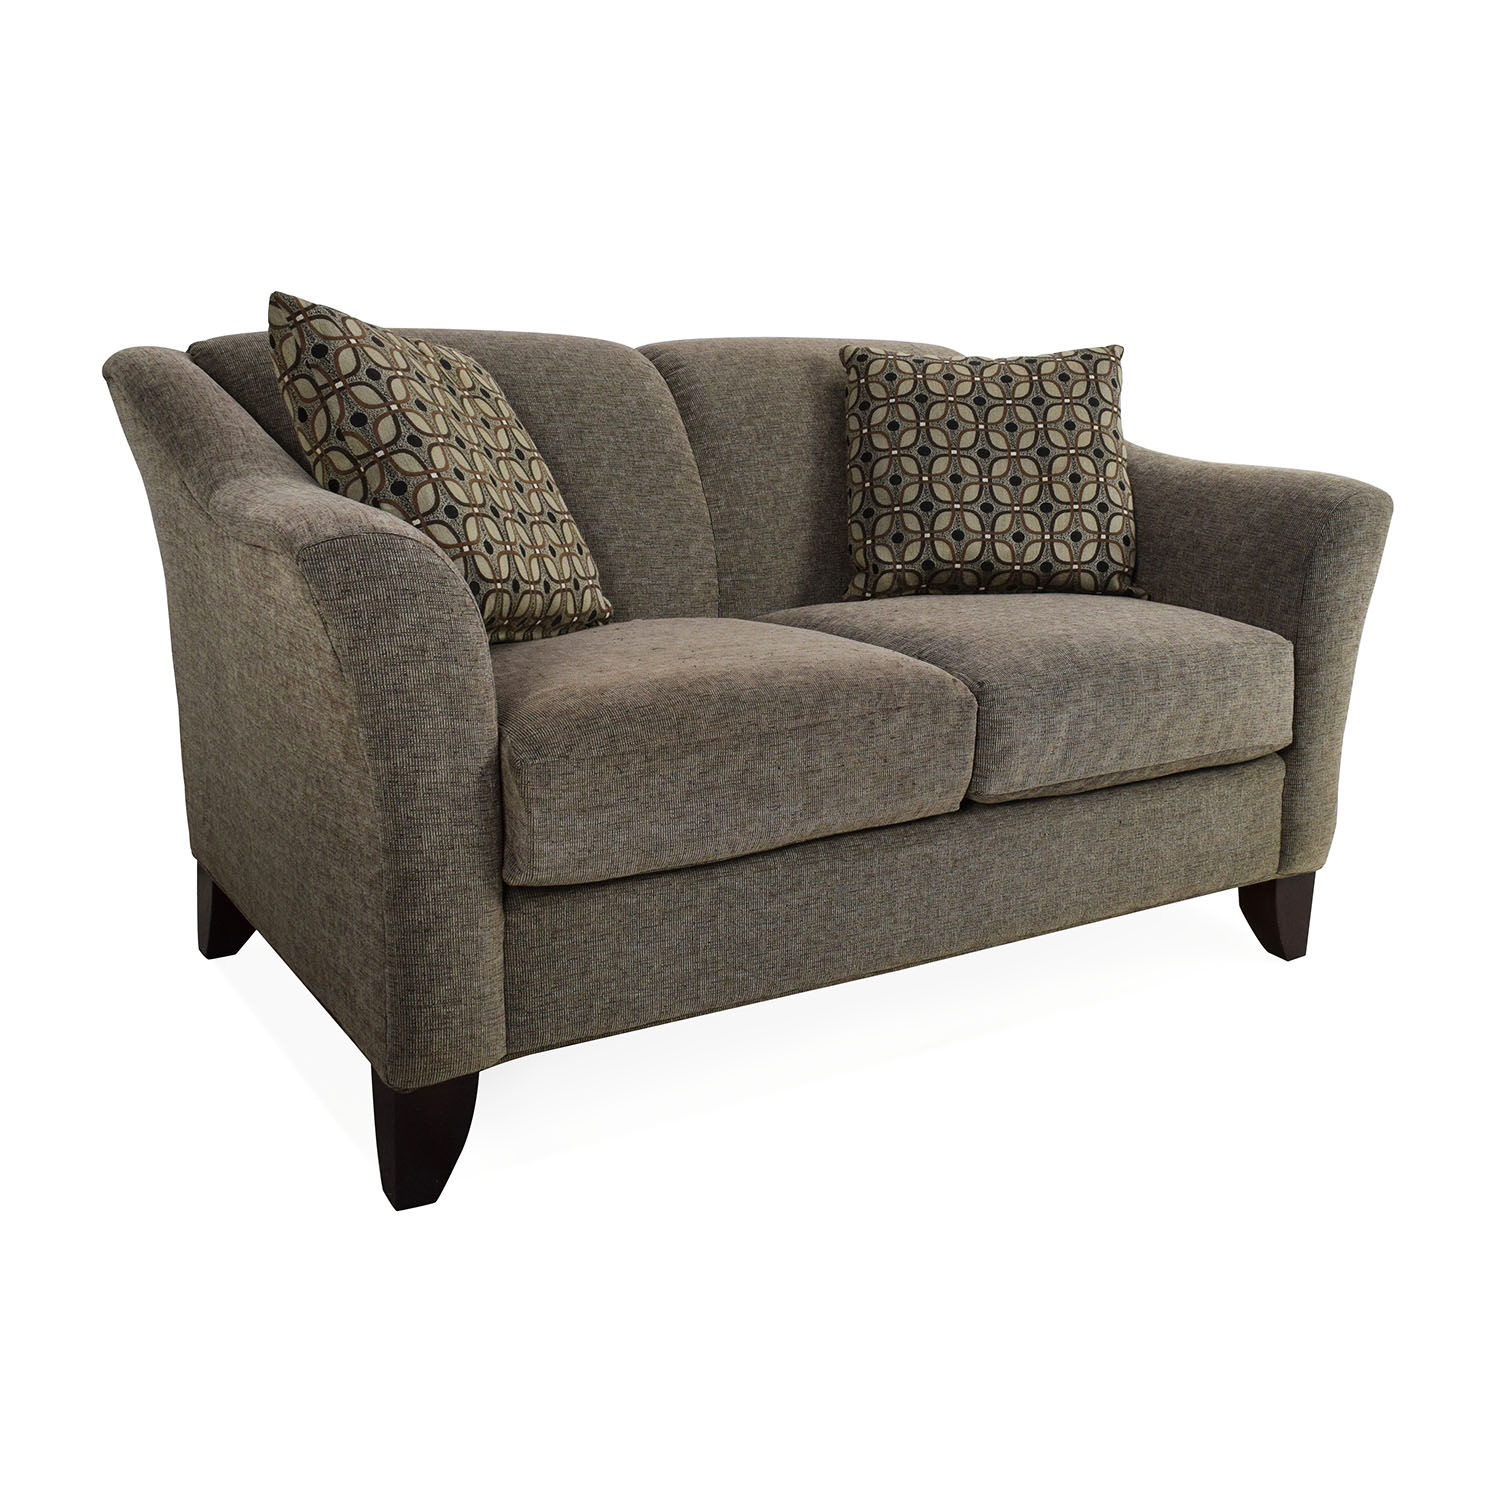 69 off raymour and flanigan raymour flanigan meyer chenille loveseat sofas Chenille sofa and loveseat